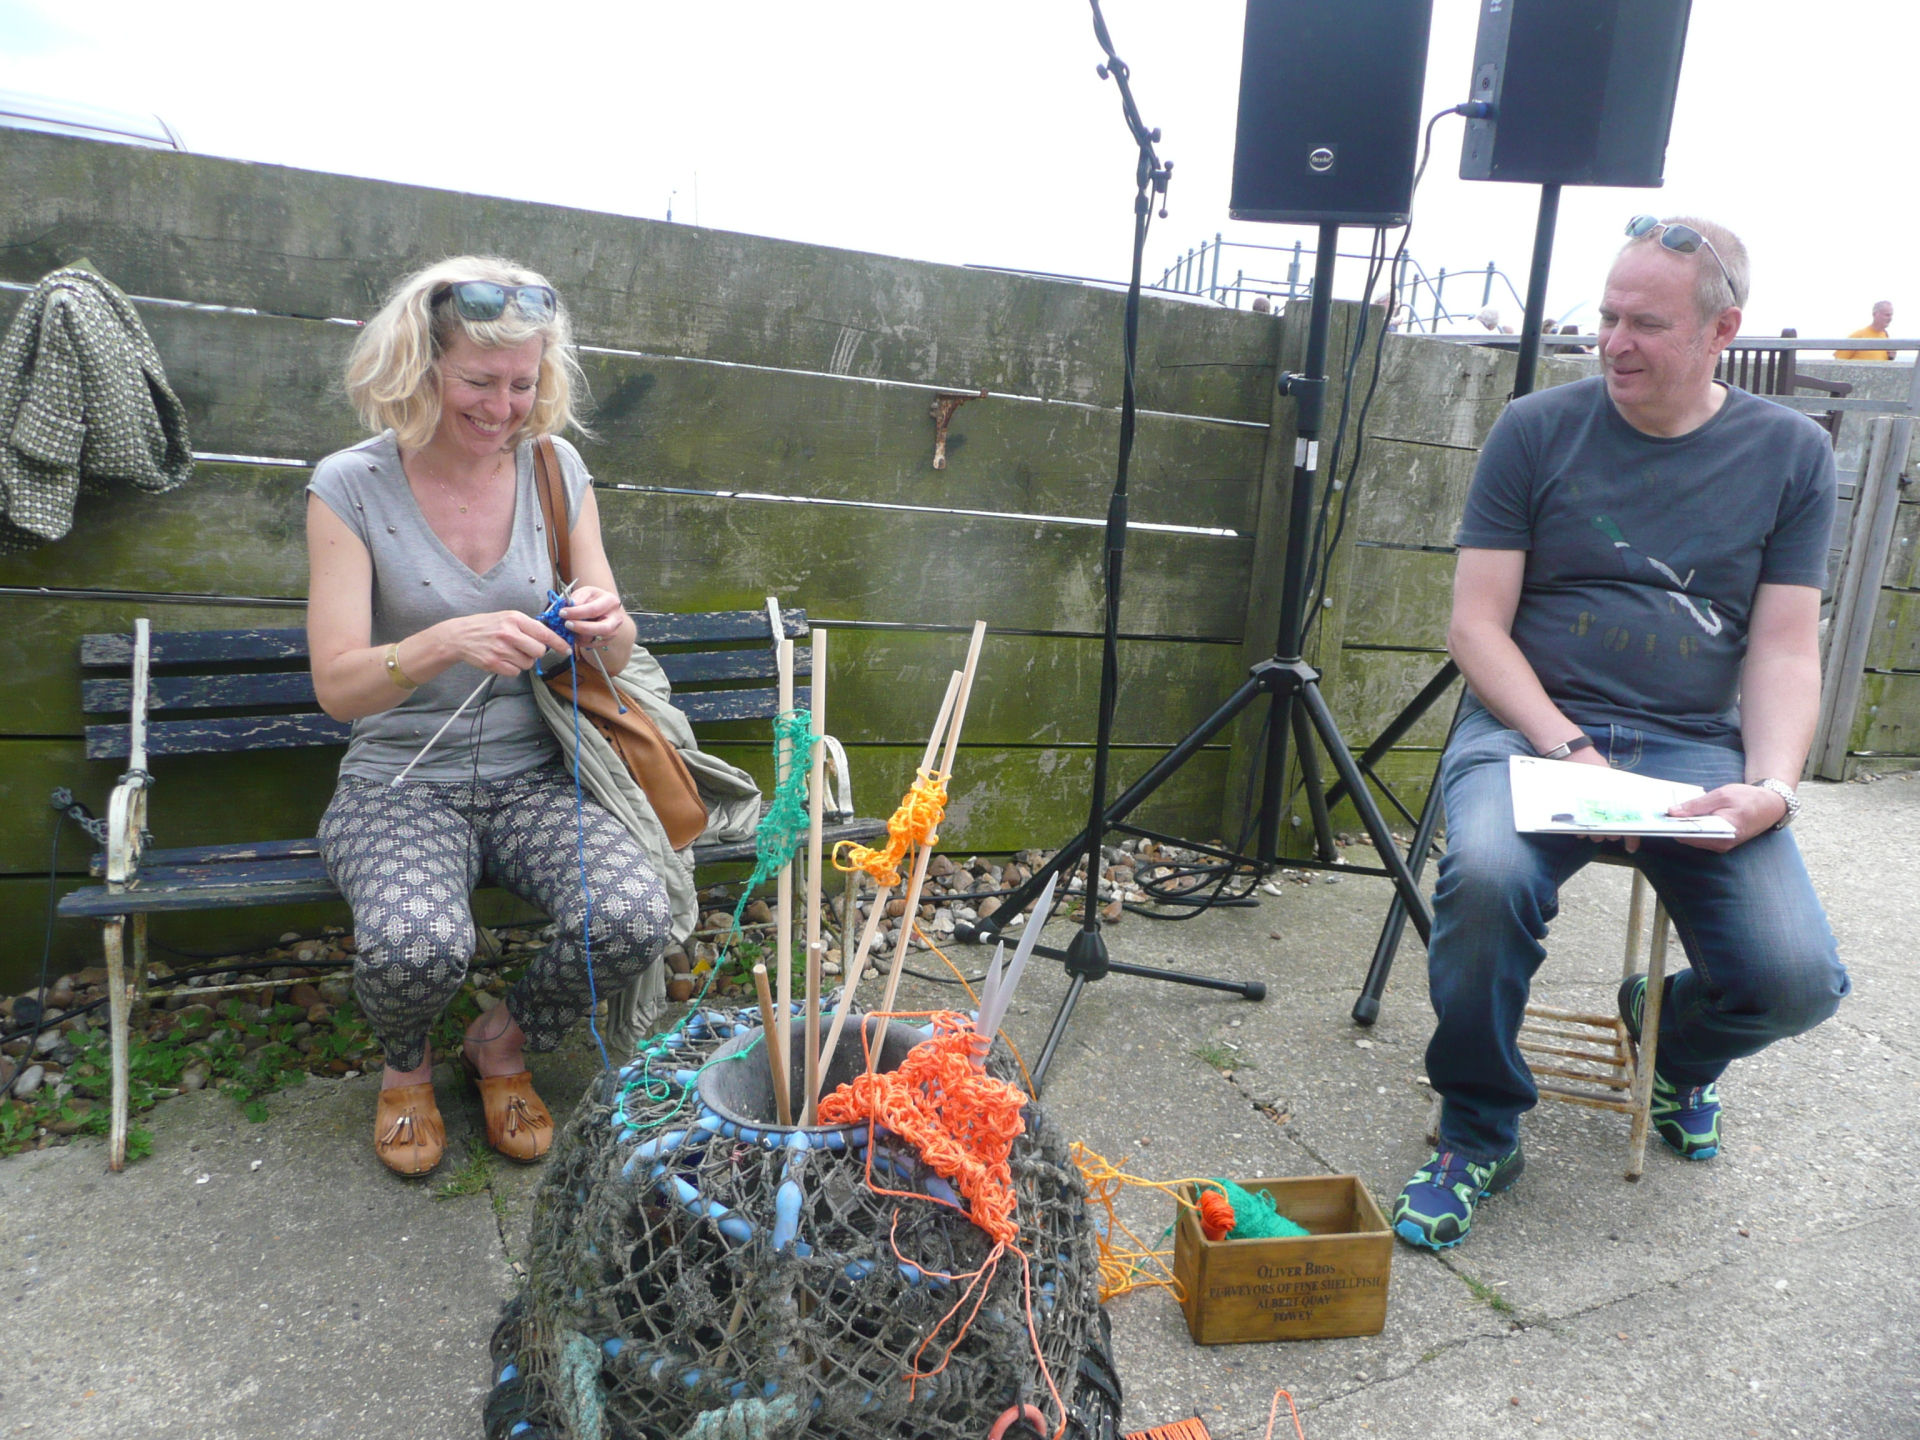 Knitting Jam, 2014, Whitstable Biennale Satellite program